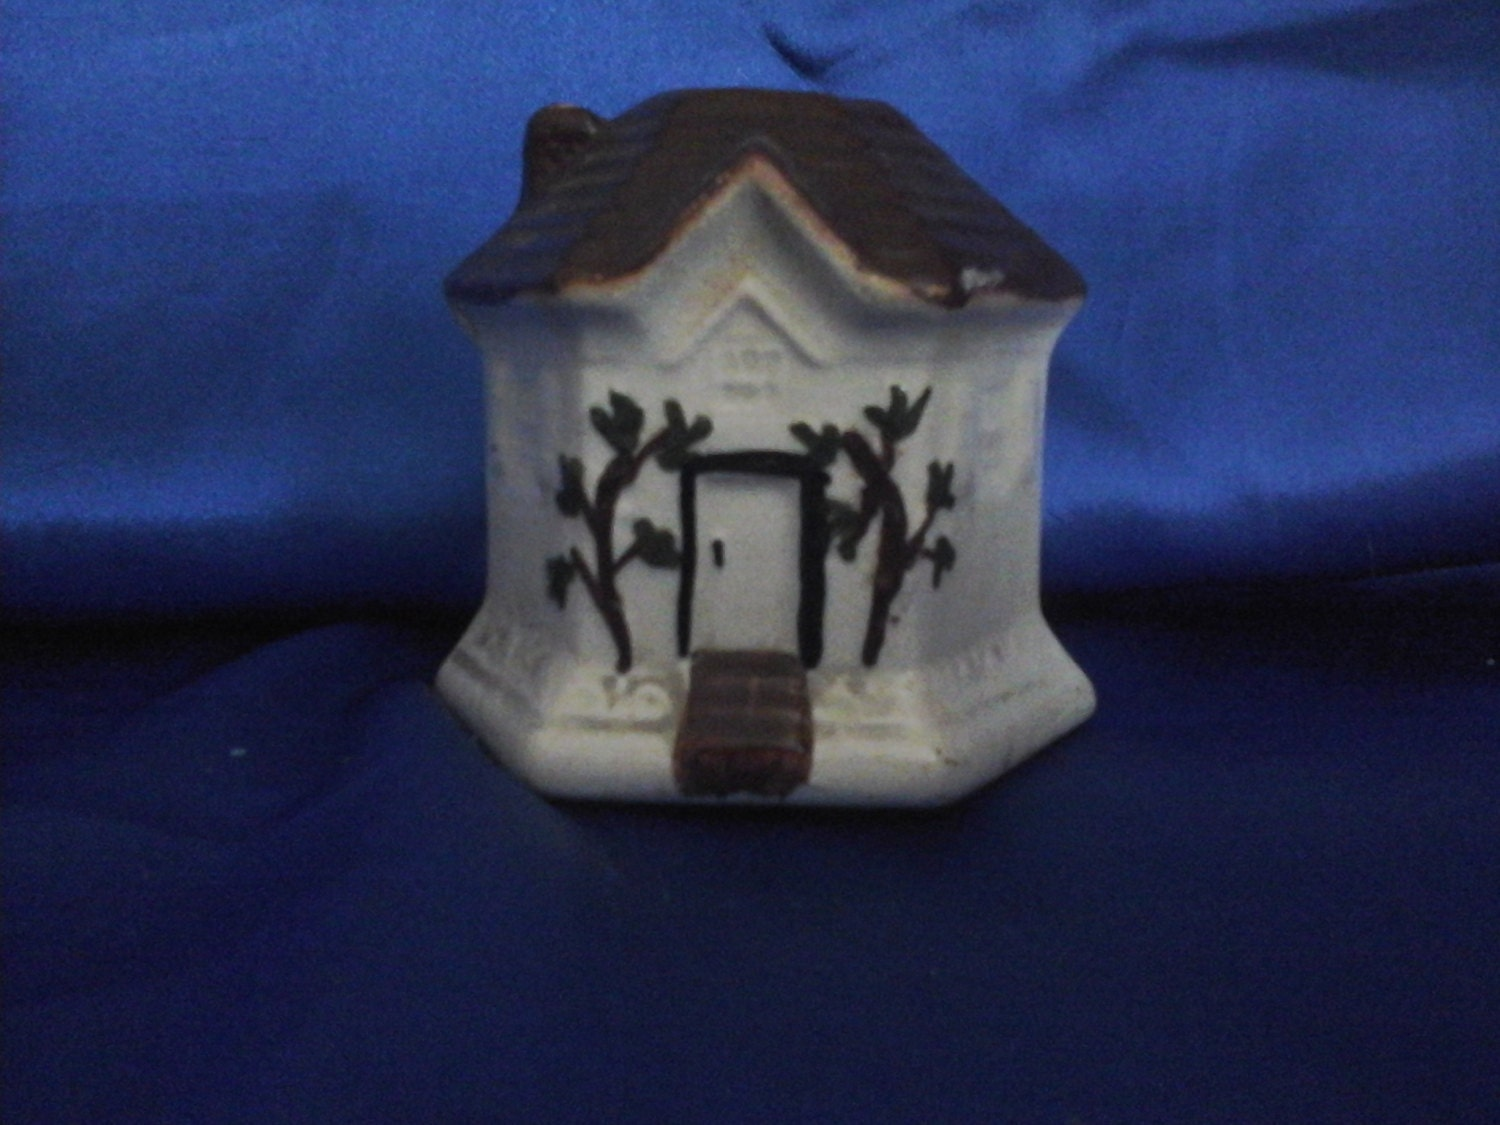 House Shaped Pot with Hole in the top for Toothpicks